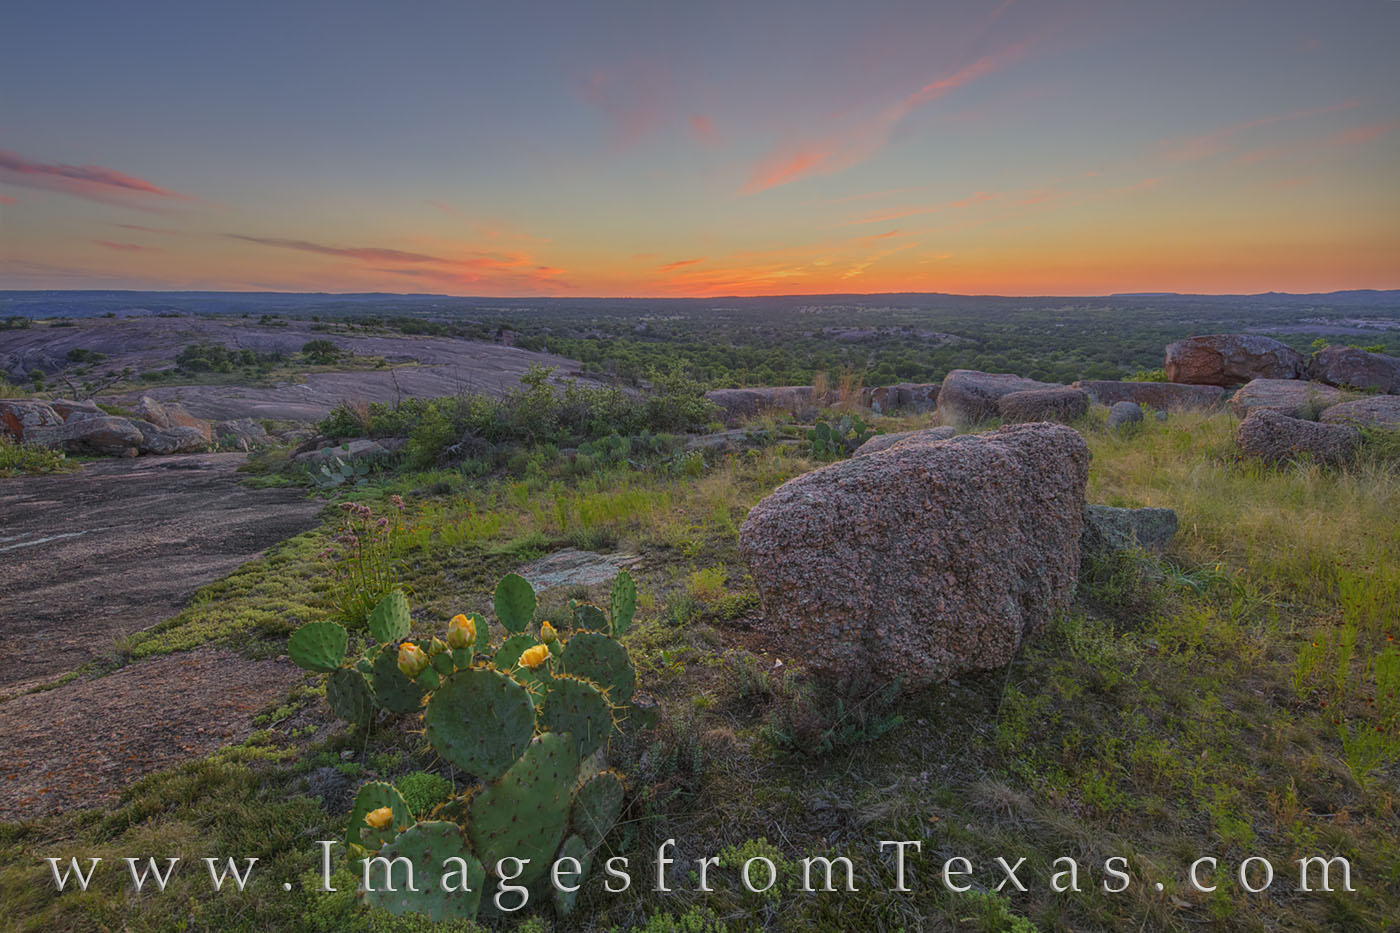 texas hill country, enchanted rock, prickly pear, cacti, wildflowers, prickly pear blooms, little rock, hills, central texas, texas state parks, sunset, evening, May, photo